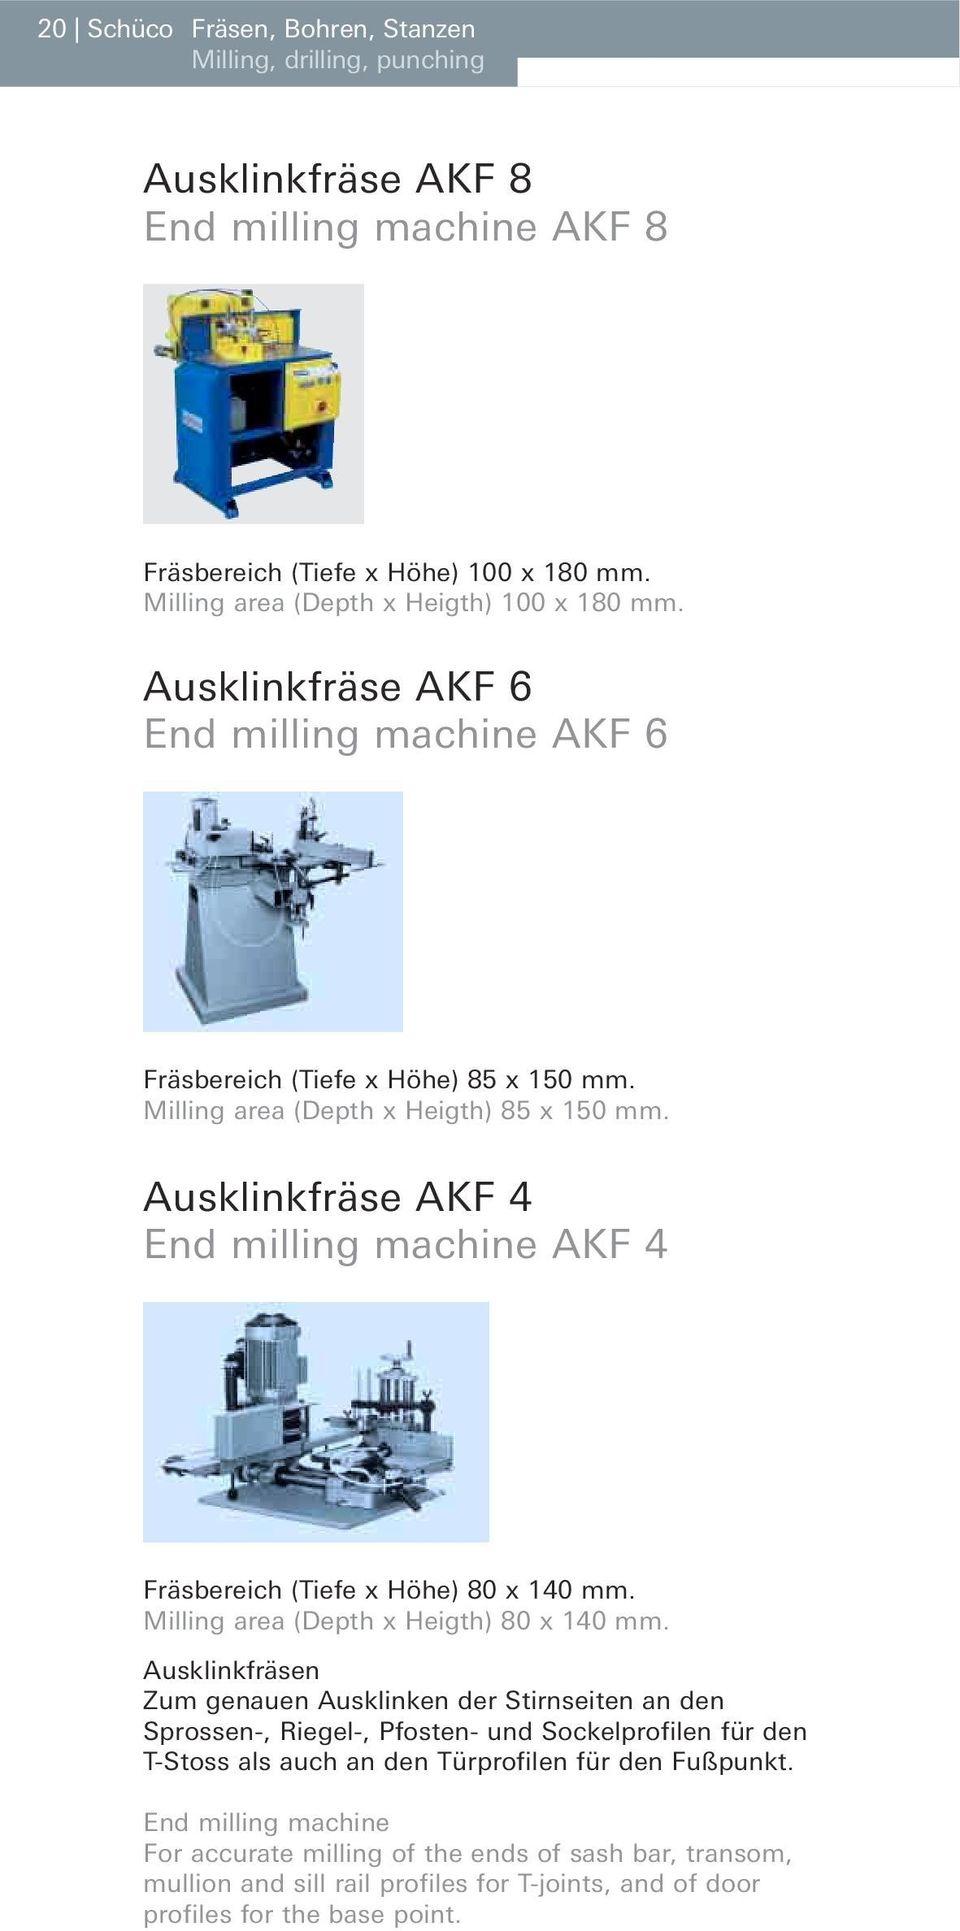 Ausklinkfräse AKF 4 End milling machine AKF 4 Fräsbereich (Tiefe x Höhe) 80 x 140 mm. Milling area (Depth x Heigth) 80 x 140 mm.